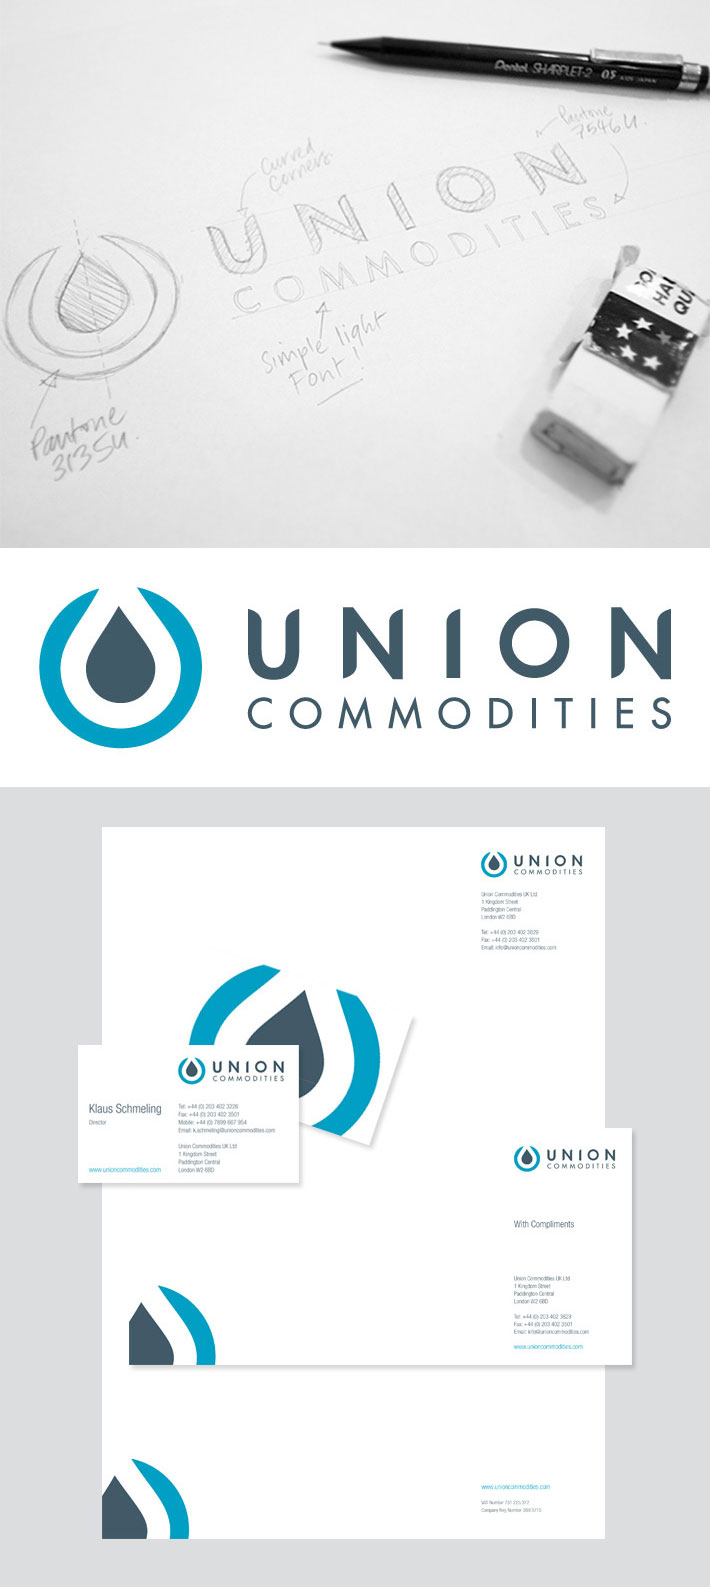 Union Commodities stationery and logo